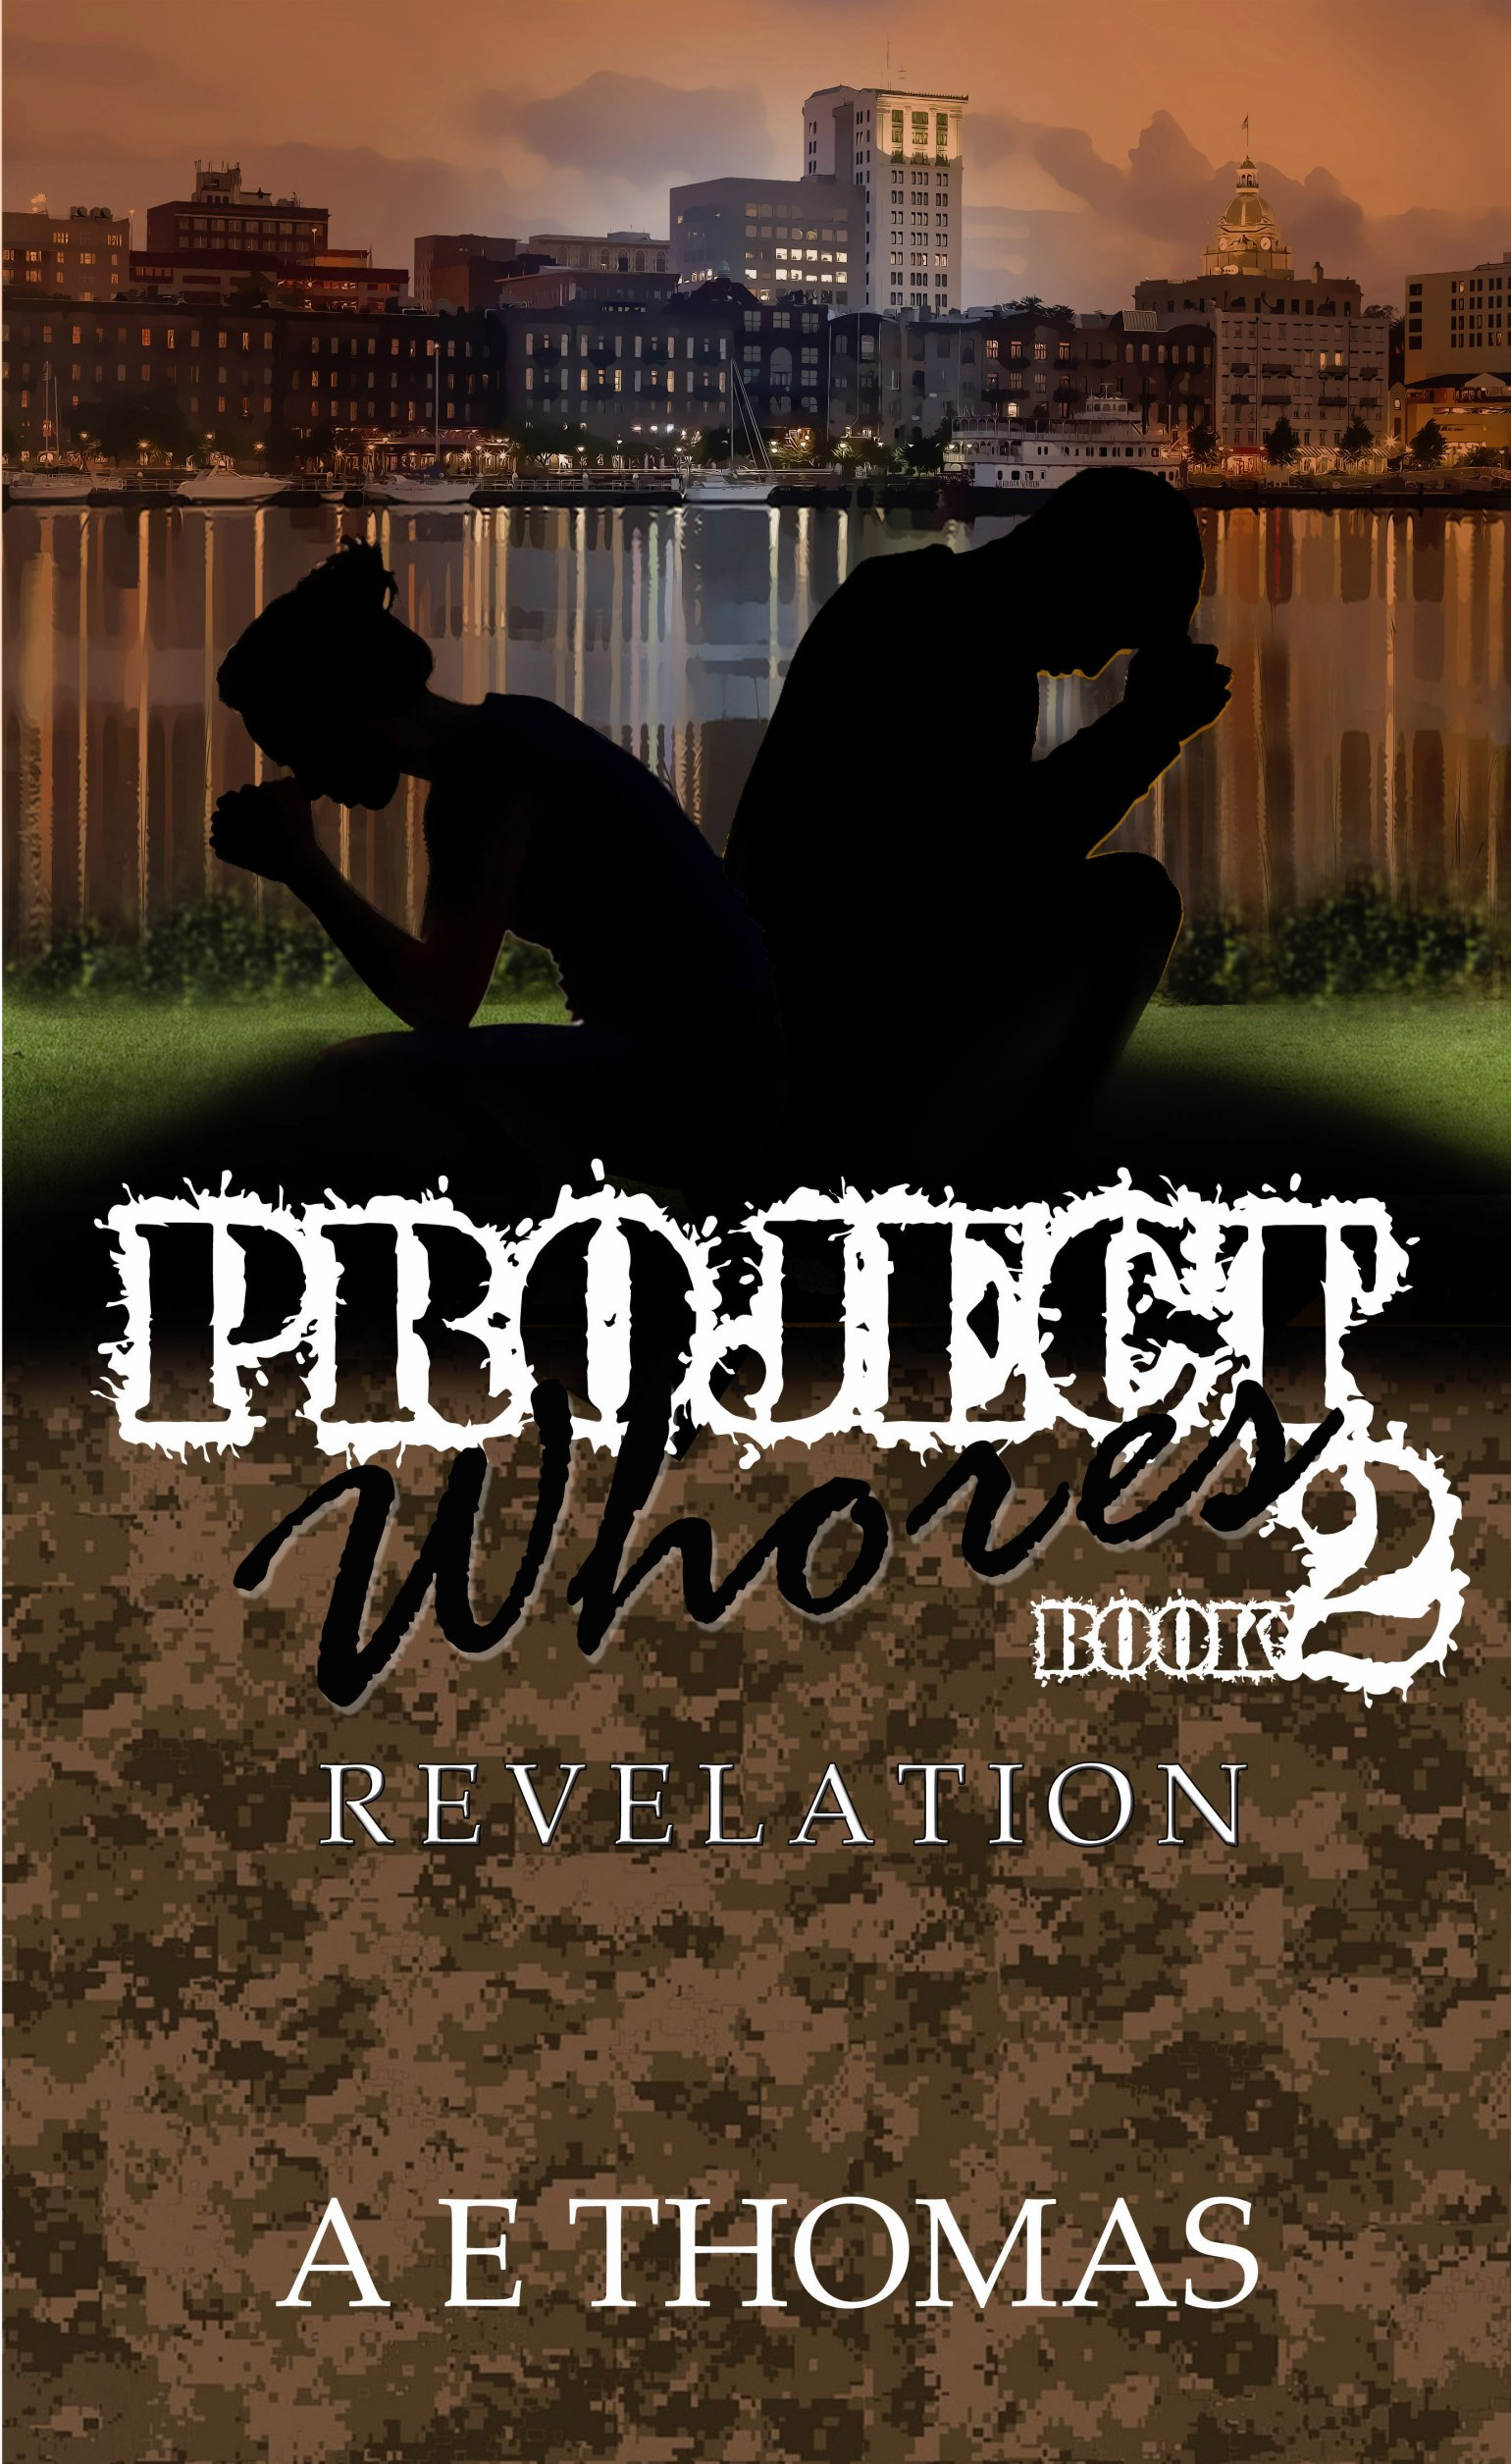 Project Whores II Revelation by A E Thomas 978-1948186421